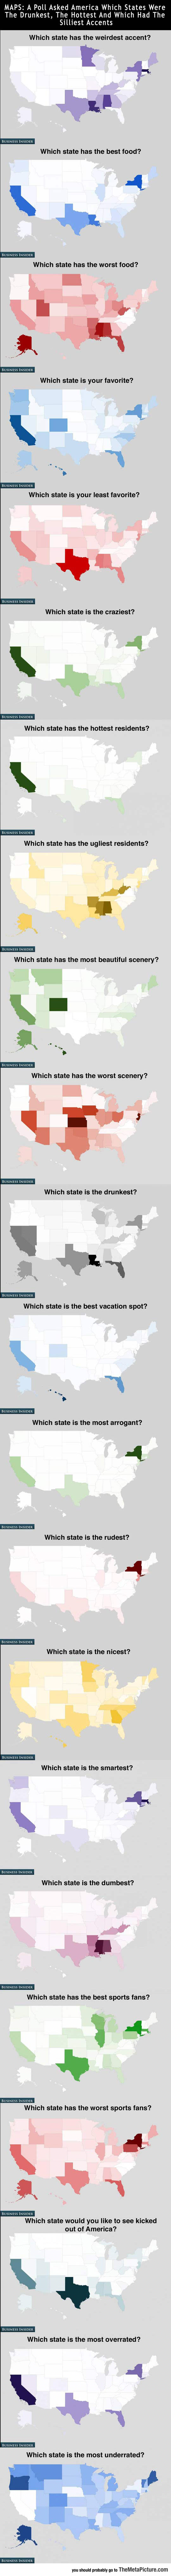 which state is the most...